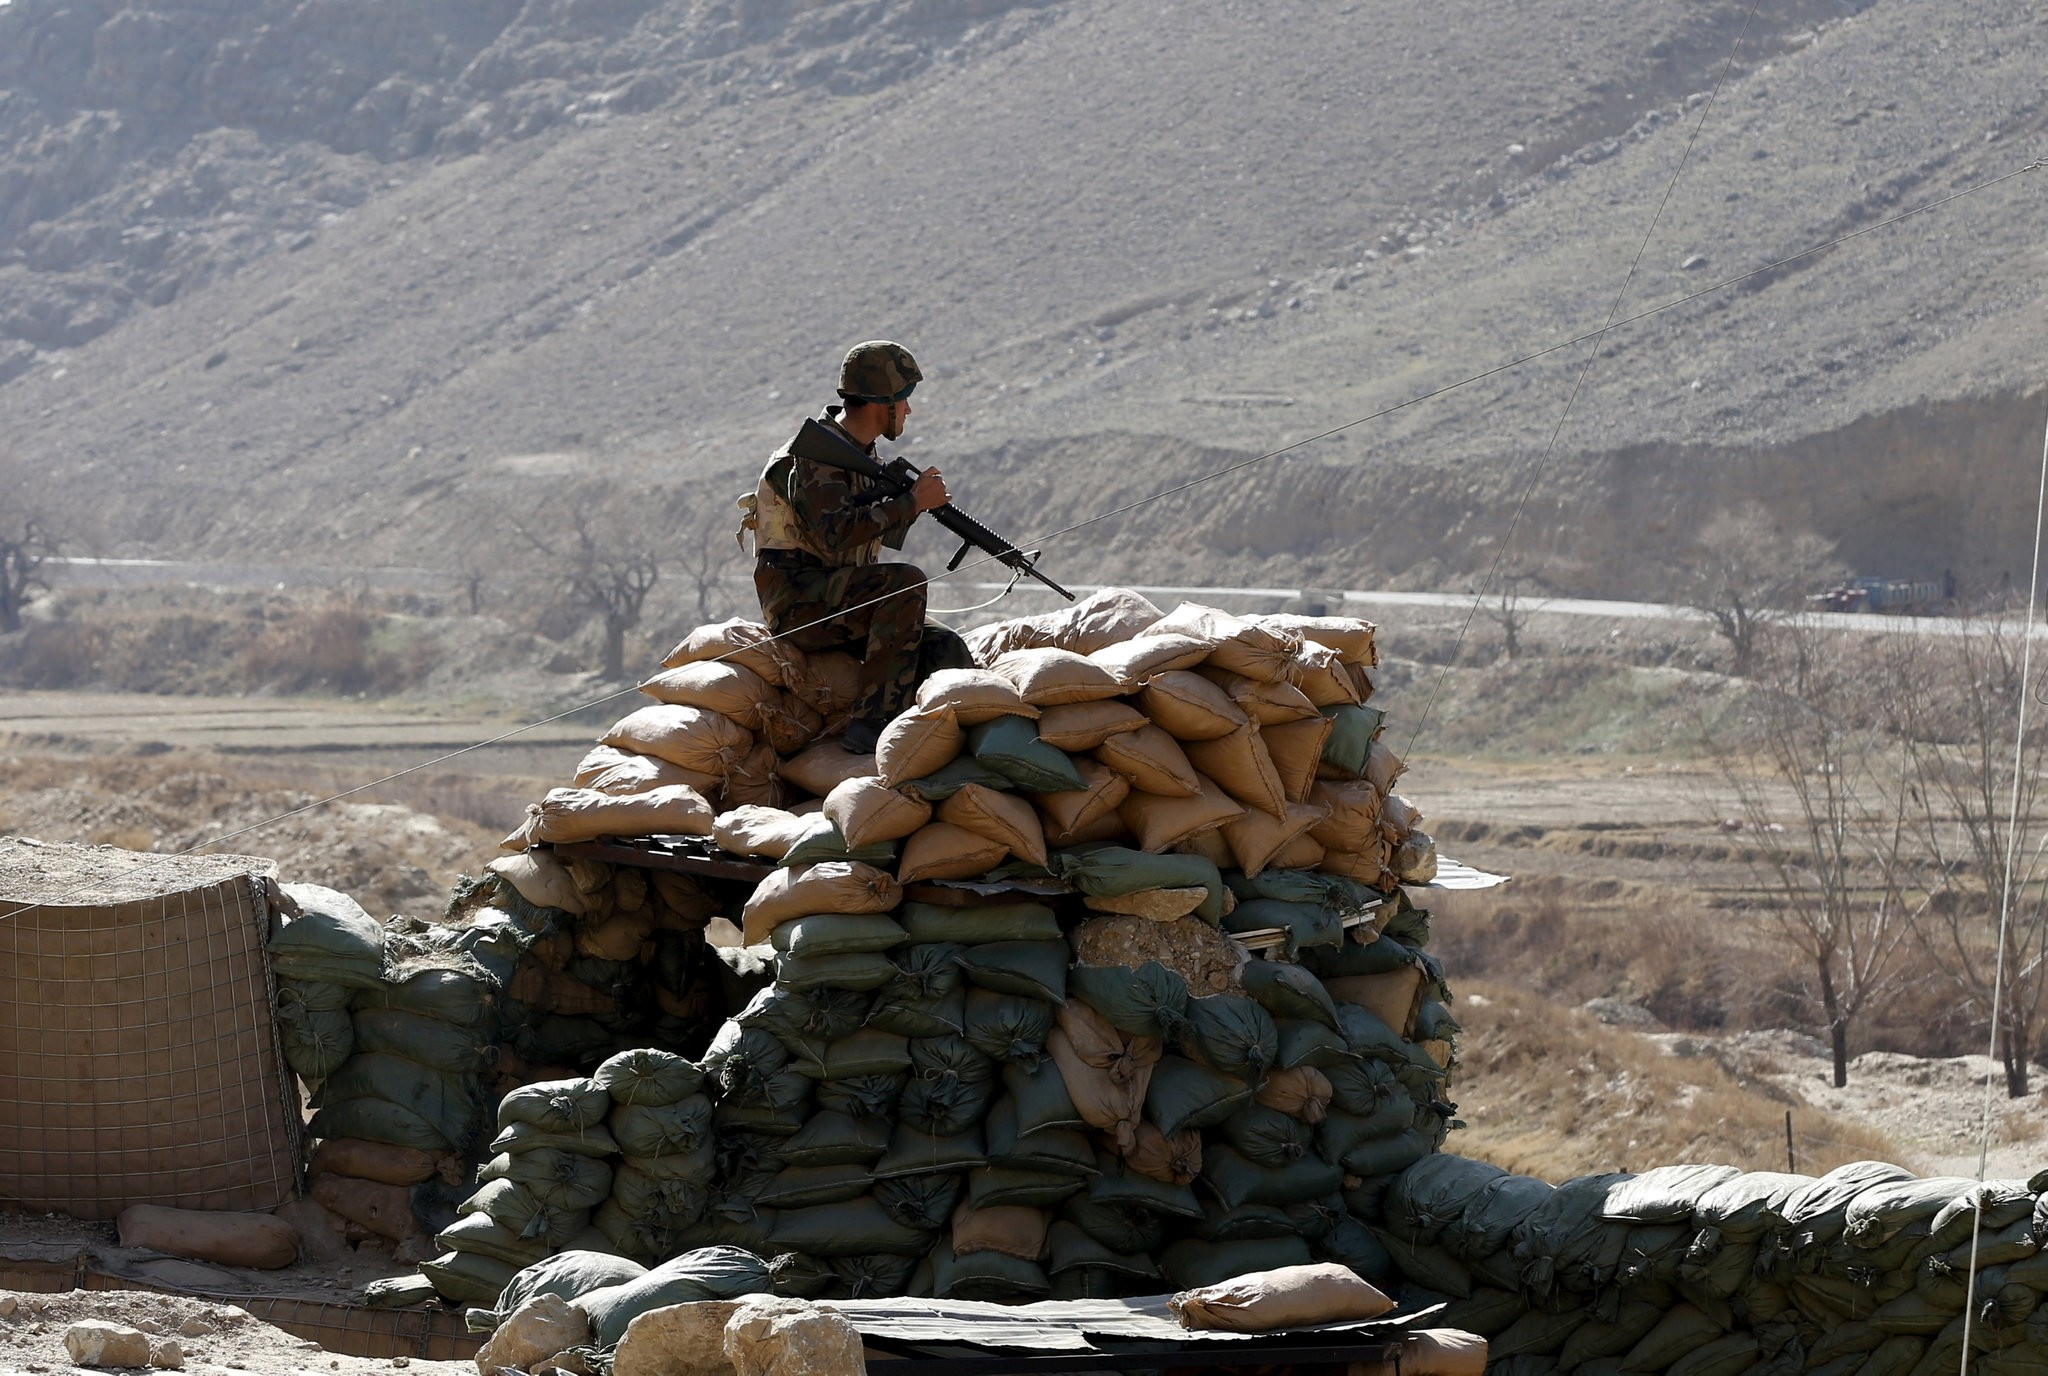 An Afghan National Army (ANA) soldier keeps watch at a checkpost in Logar province, Afghanistan, Feb. 16, 2016. (REUTERS Photo)